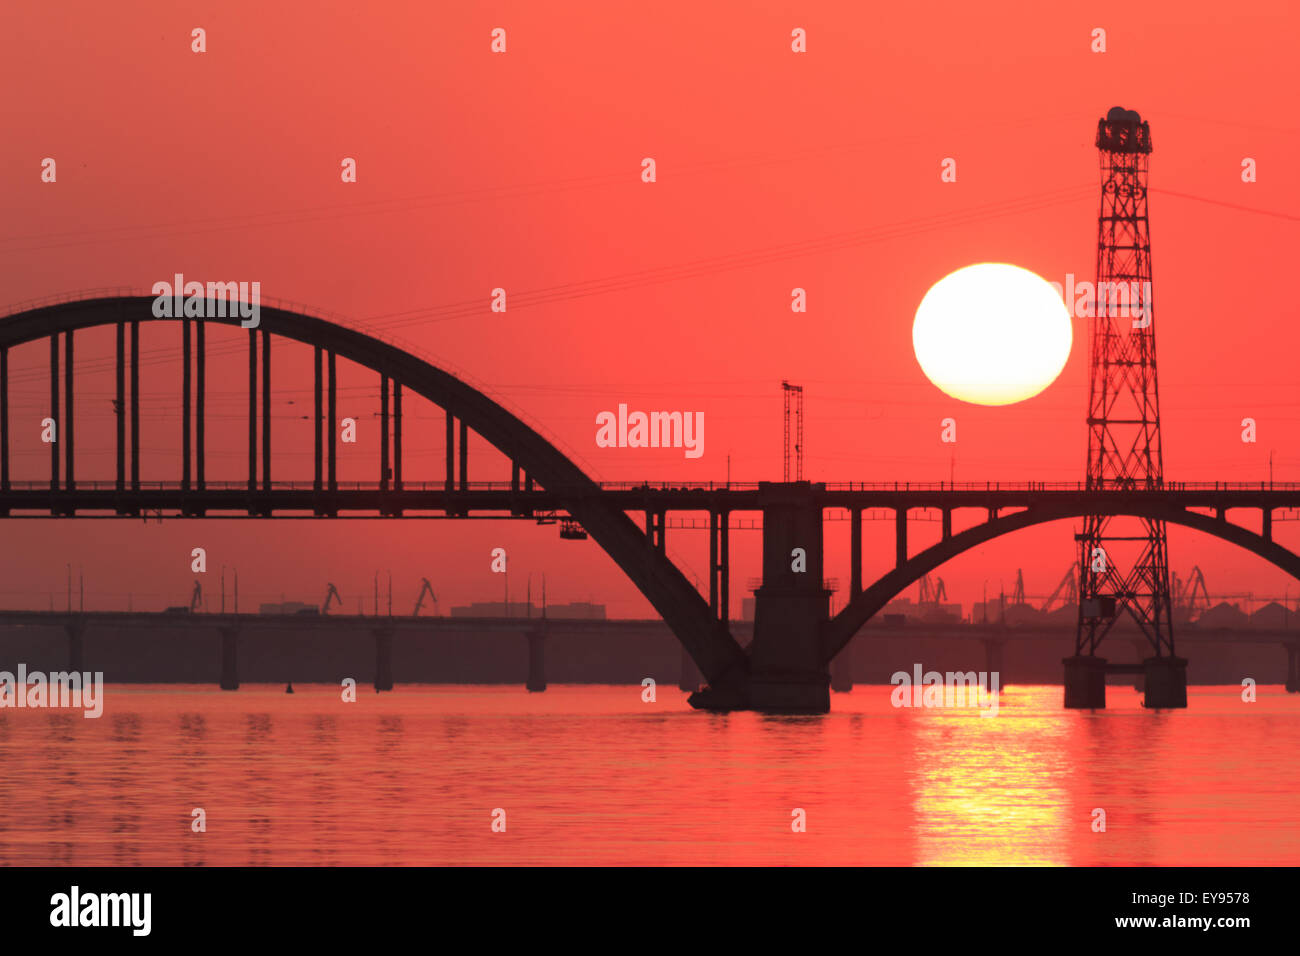 Sunset over river - Stock Image